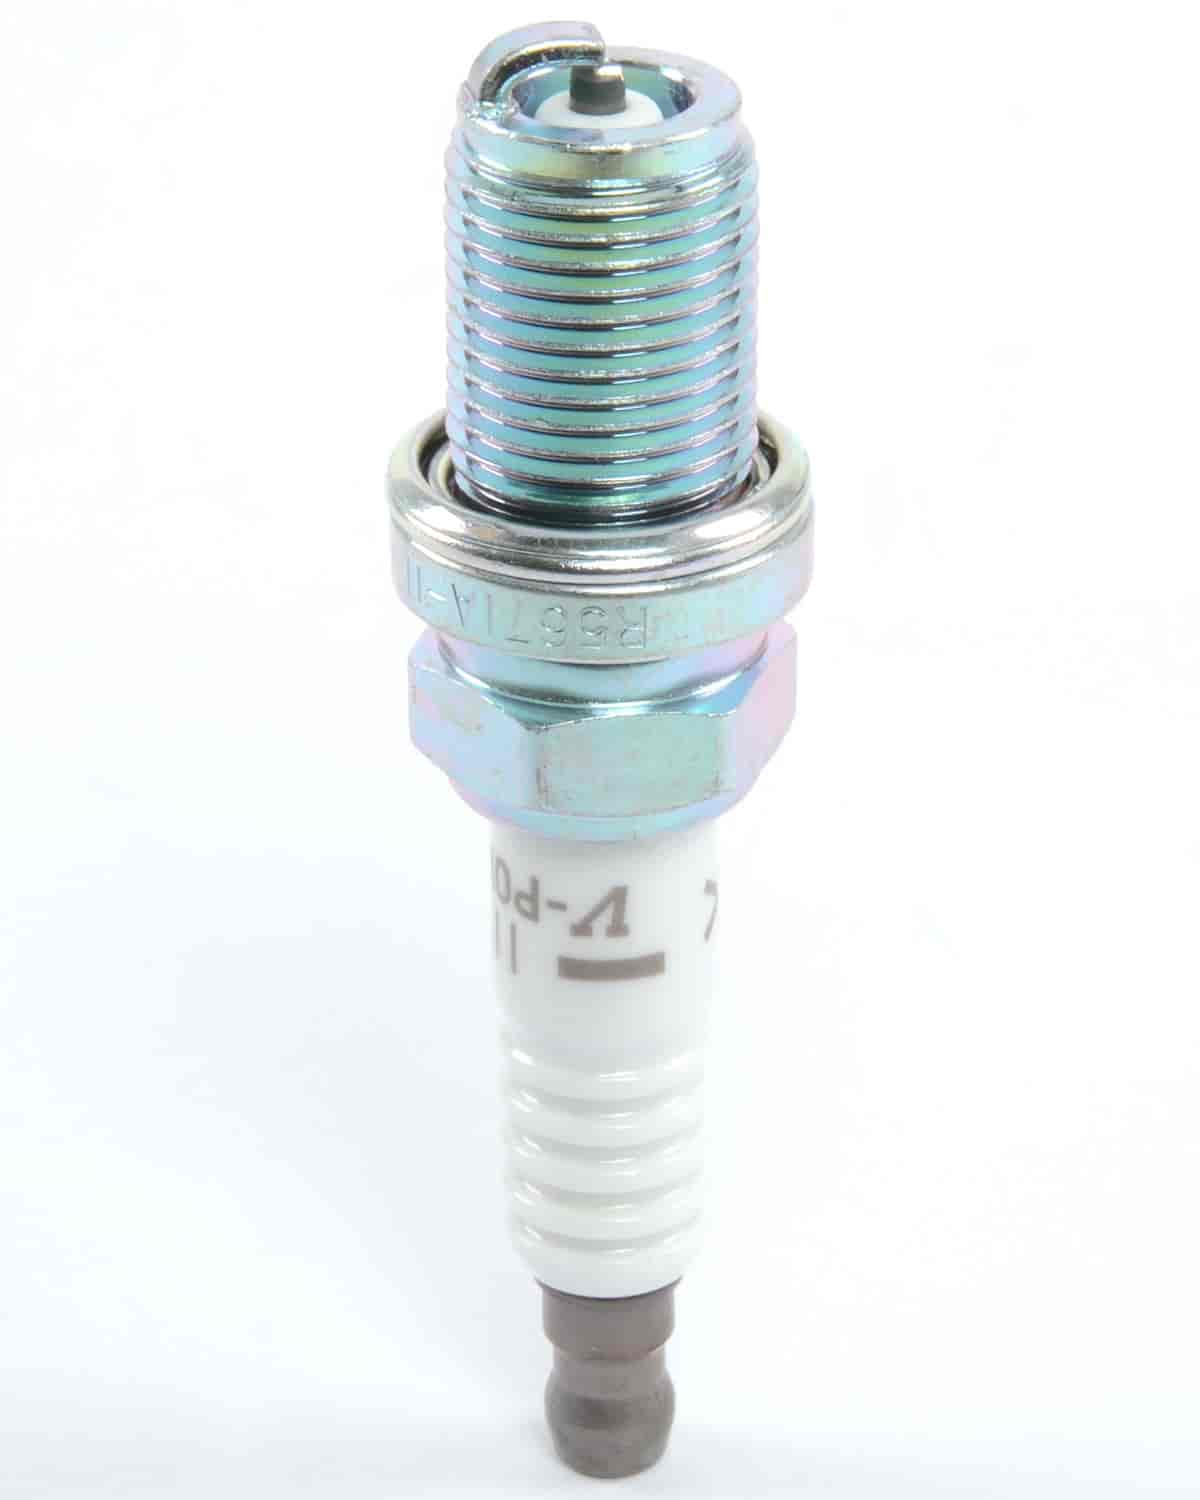 NGK Spark Plugs R5671A-11